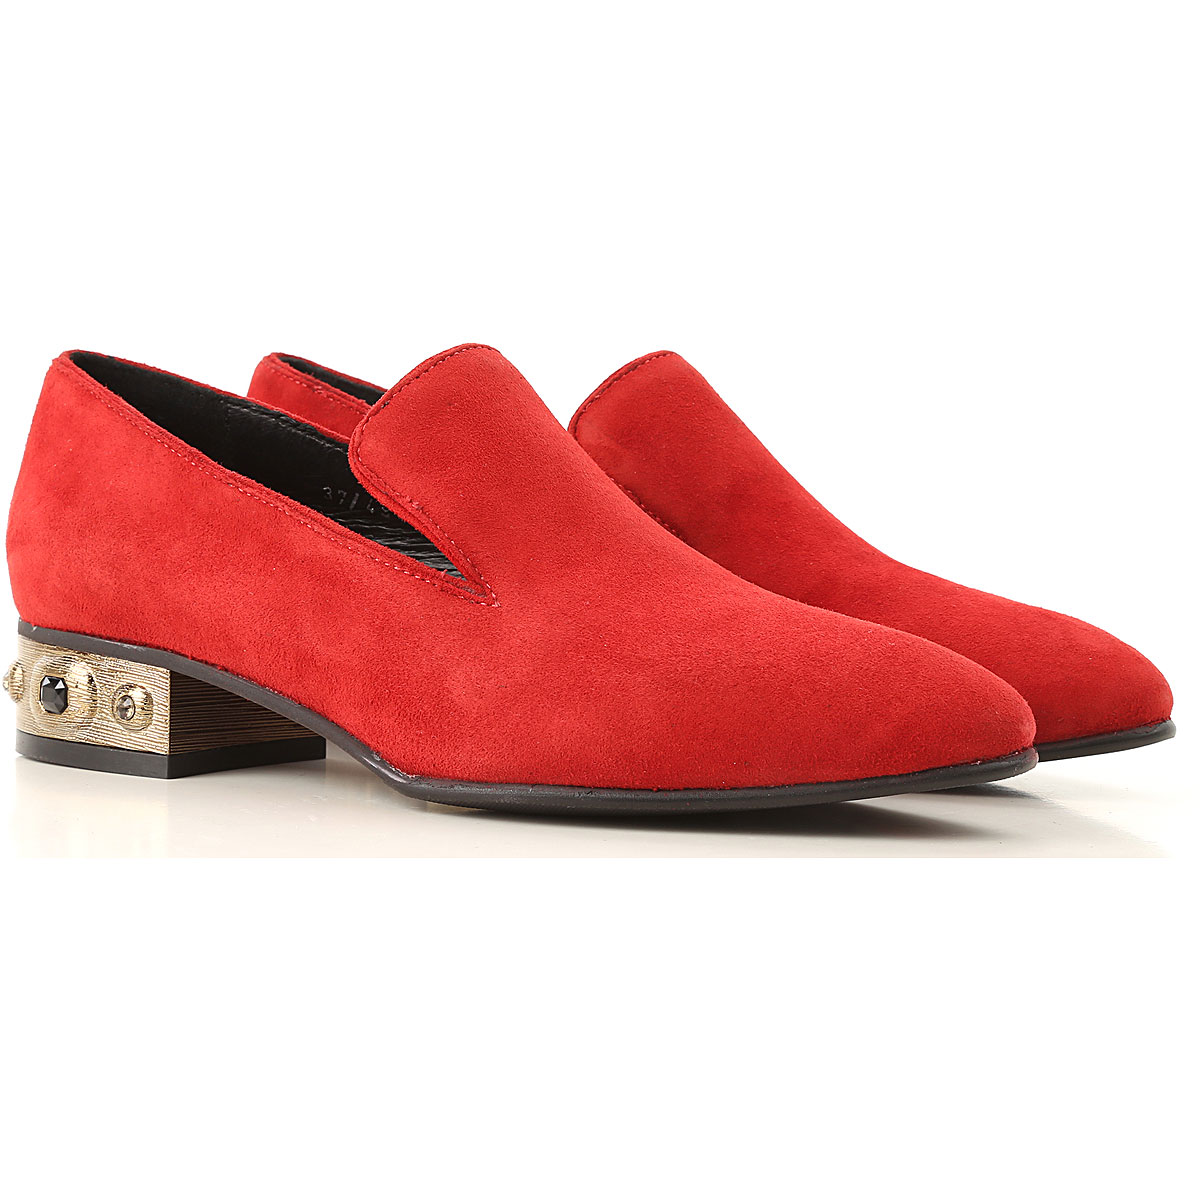 Elvio Zanon Loafers for Women On Sale in Outlet, Red, Suede leather, 2019, 6 7